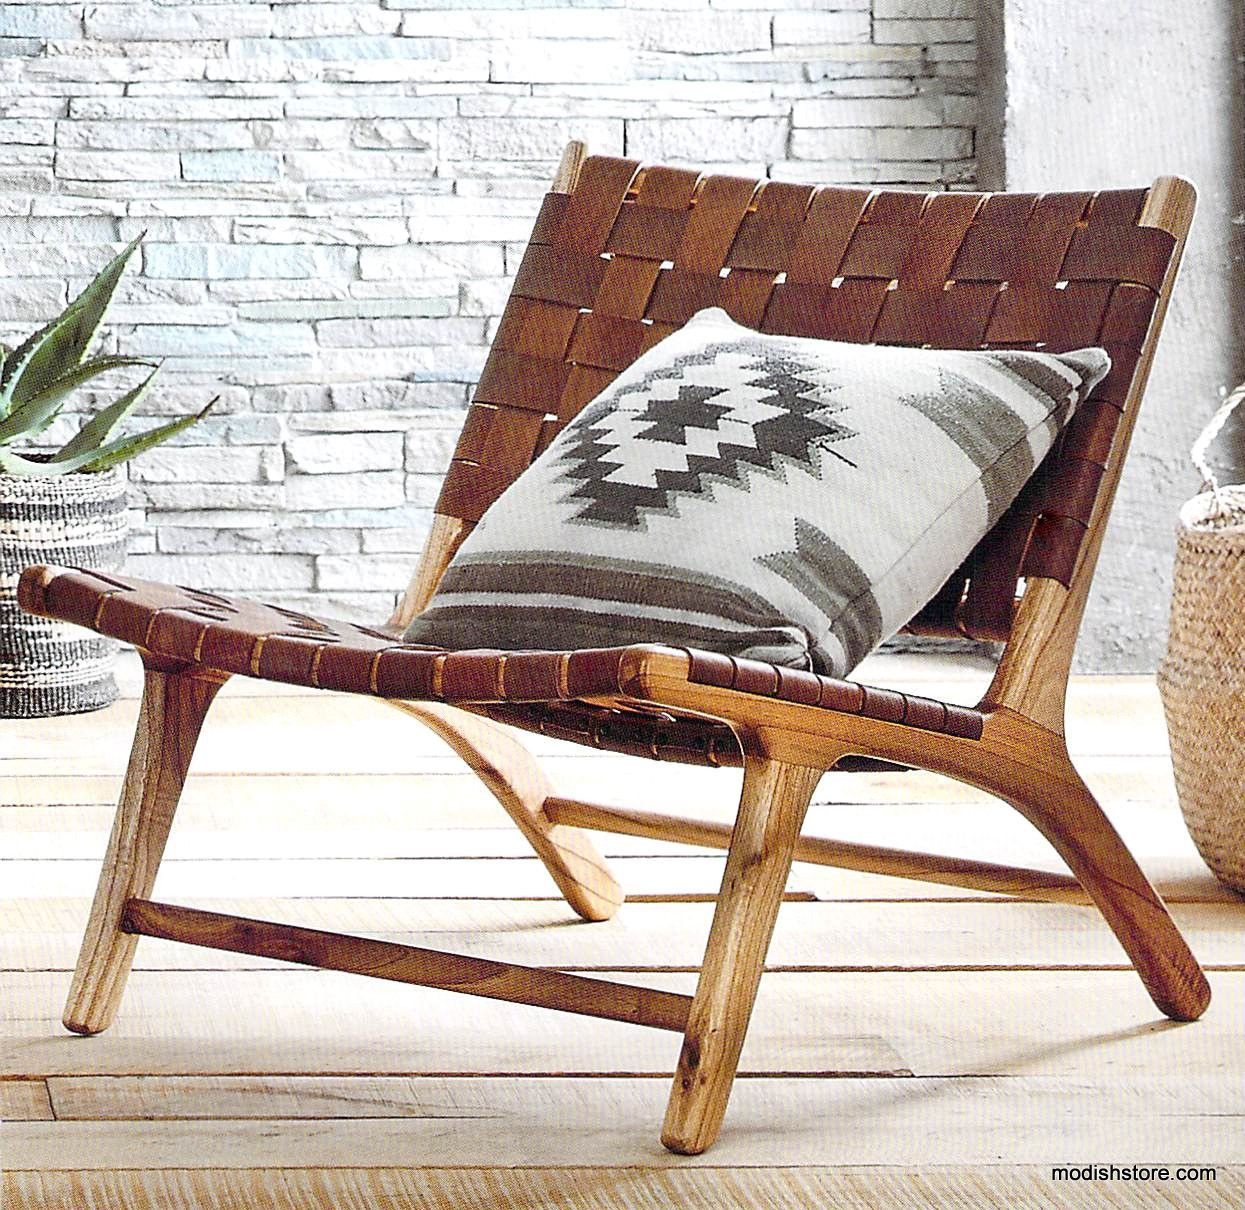 Our Low, Woven, Leather Chair Makes Lounging And Inescapable Temptation.  Leather Straps In A Rich Caramel Color Are Woven Onto A White Cedar  Hardwood Frame ...